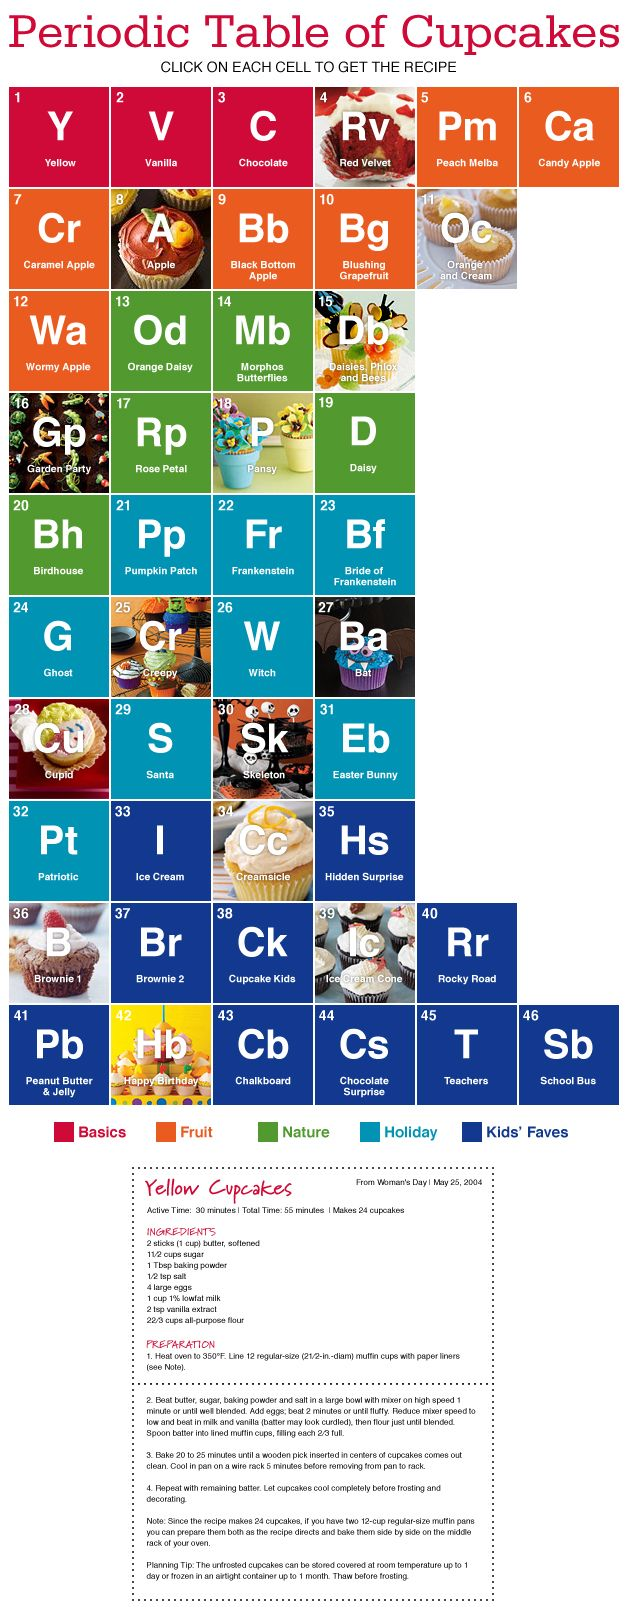 10 best periodic table 5religionsupernatural images on 50 easy cupcake recipes to make from scratch gamestrikefo Choice Image